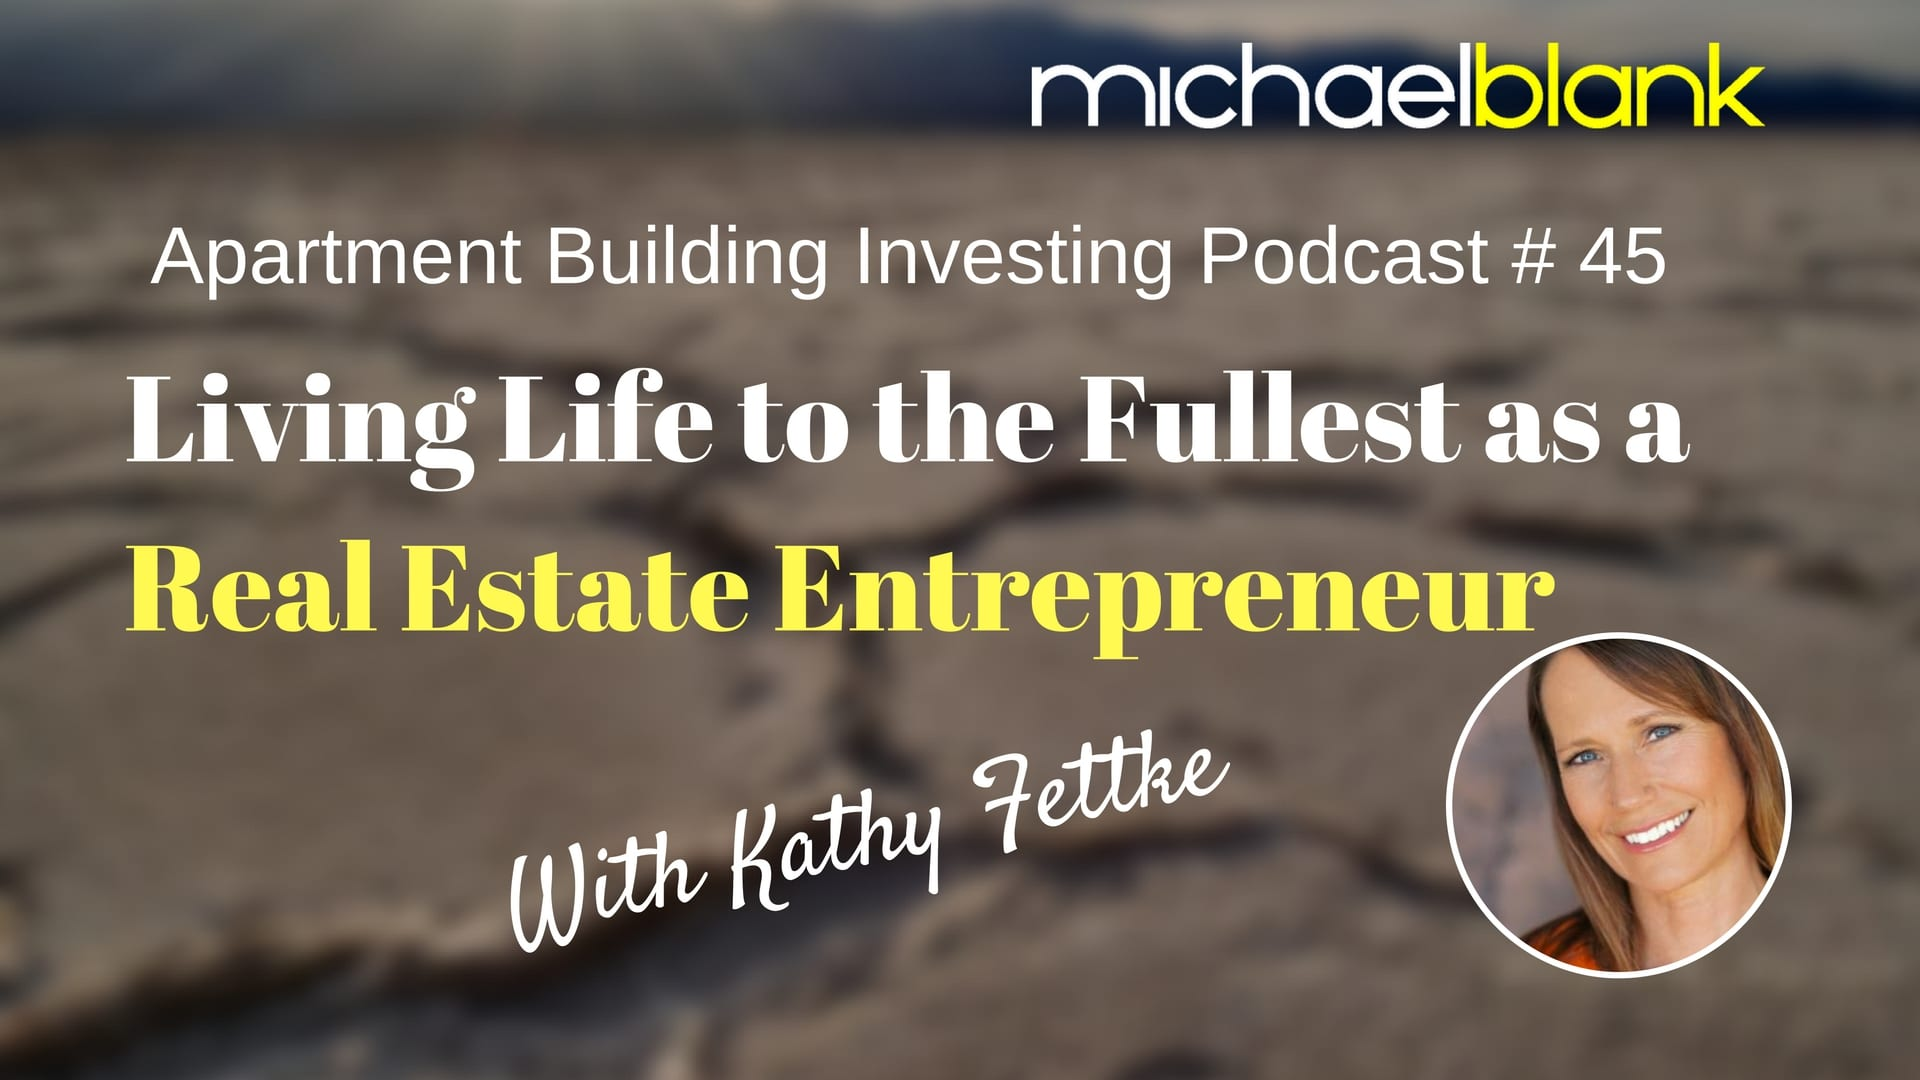 Real Estate Entrepreneur : Mb living life to the fullest as a real estate